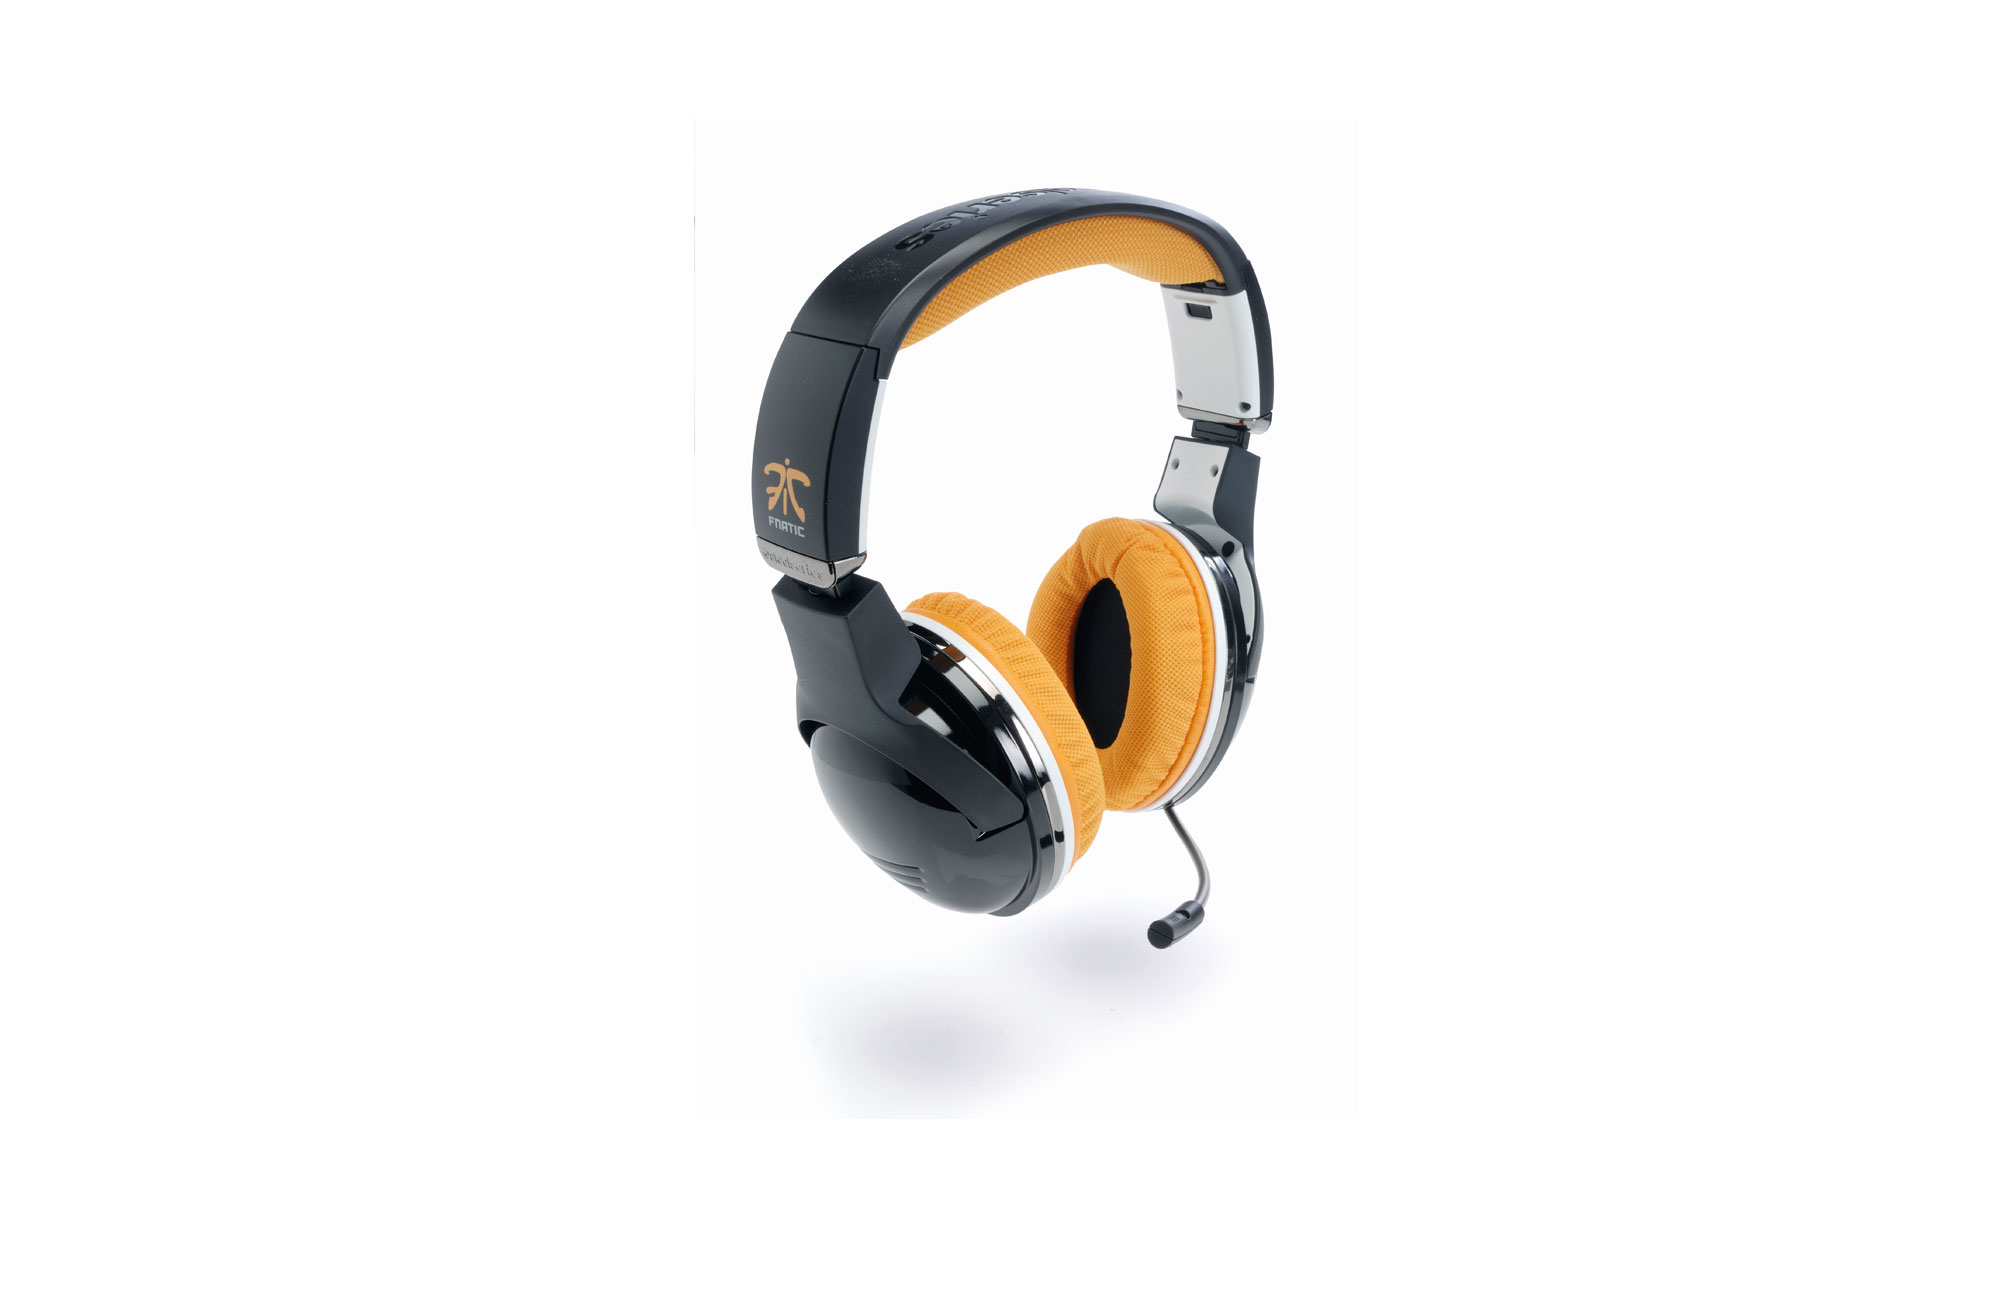 Steelseries 7H Fnatic Limited Edition